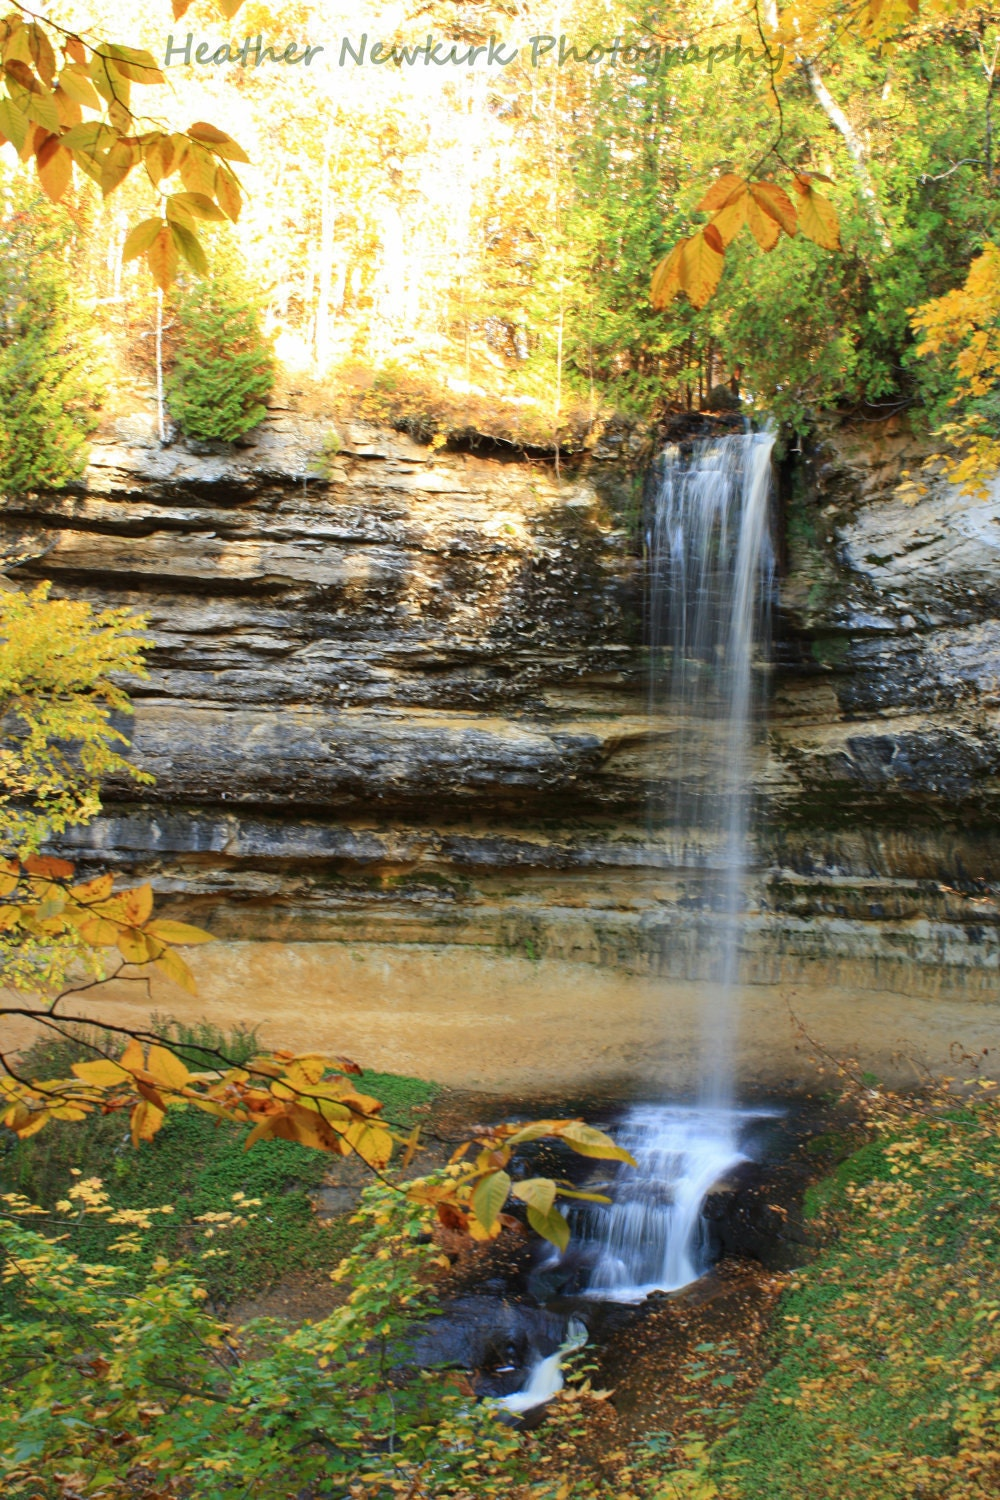 Autumn Fall Colors at Waterfall-Pictured Rocks Munising Falls in Michigan's Upper Peninsula--Fine Art Photograph-5x7 - HeatherNewkirkPhotos